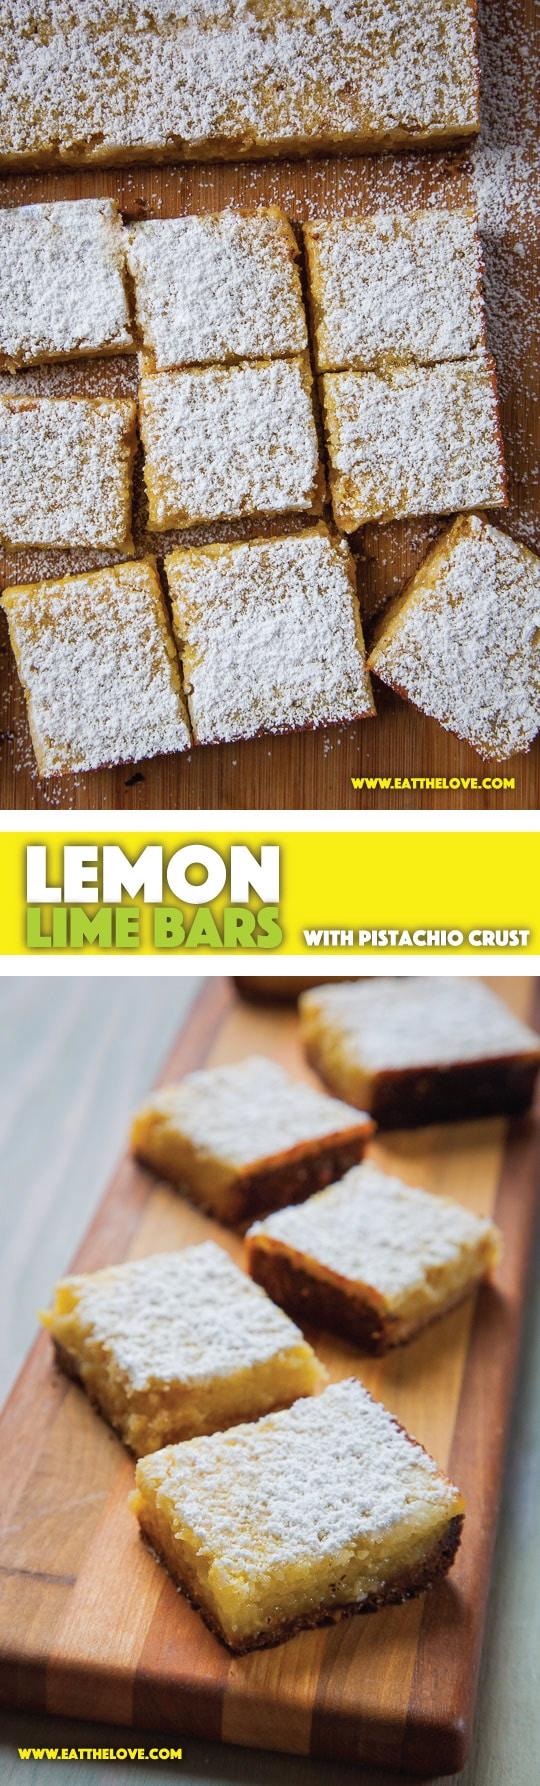 Easy-to-Make Lemon Lime Bars with Pistachio Crust. Photo and recipe by Irvin Lin of Eat the Love.